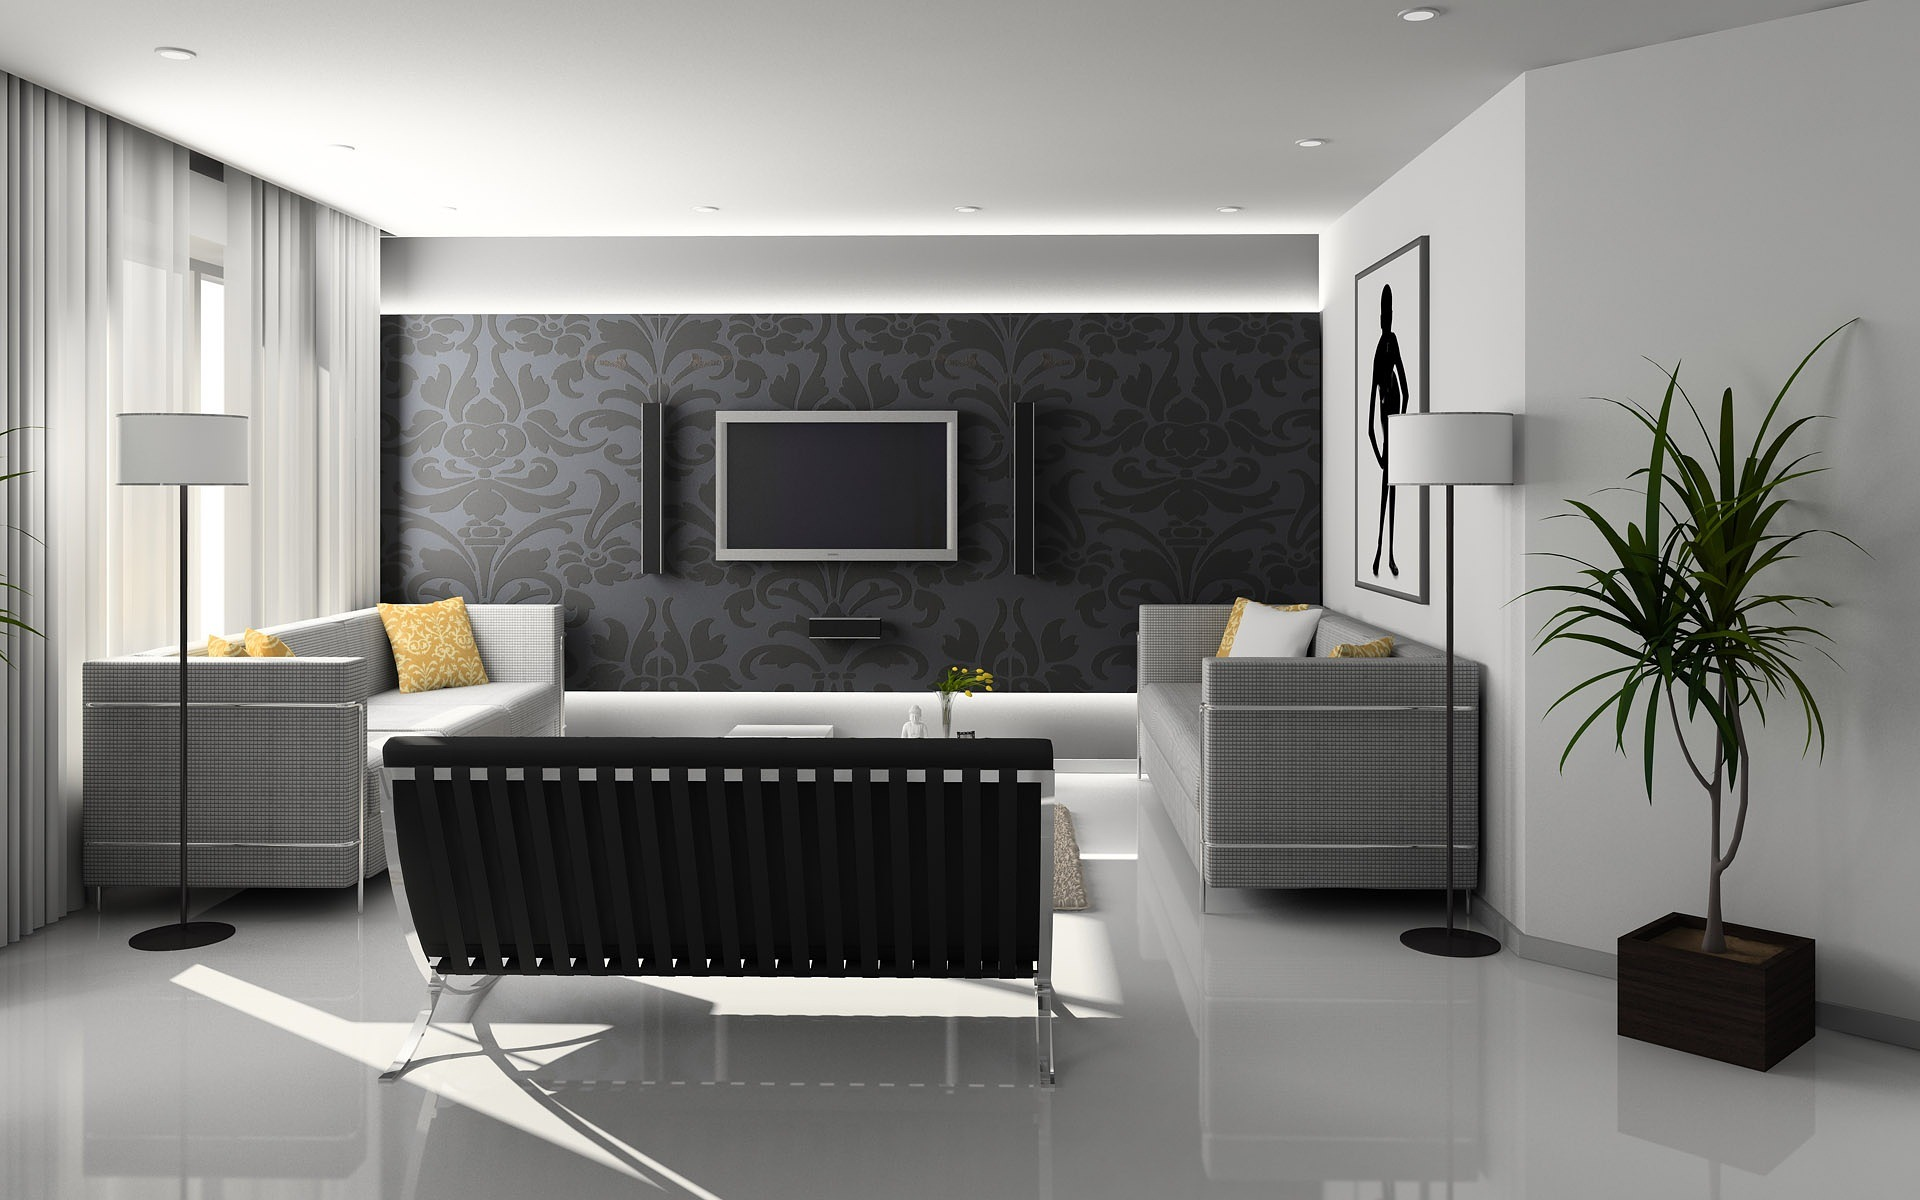 Painting contractor leicester